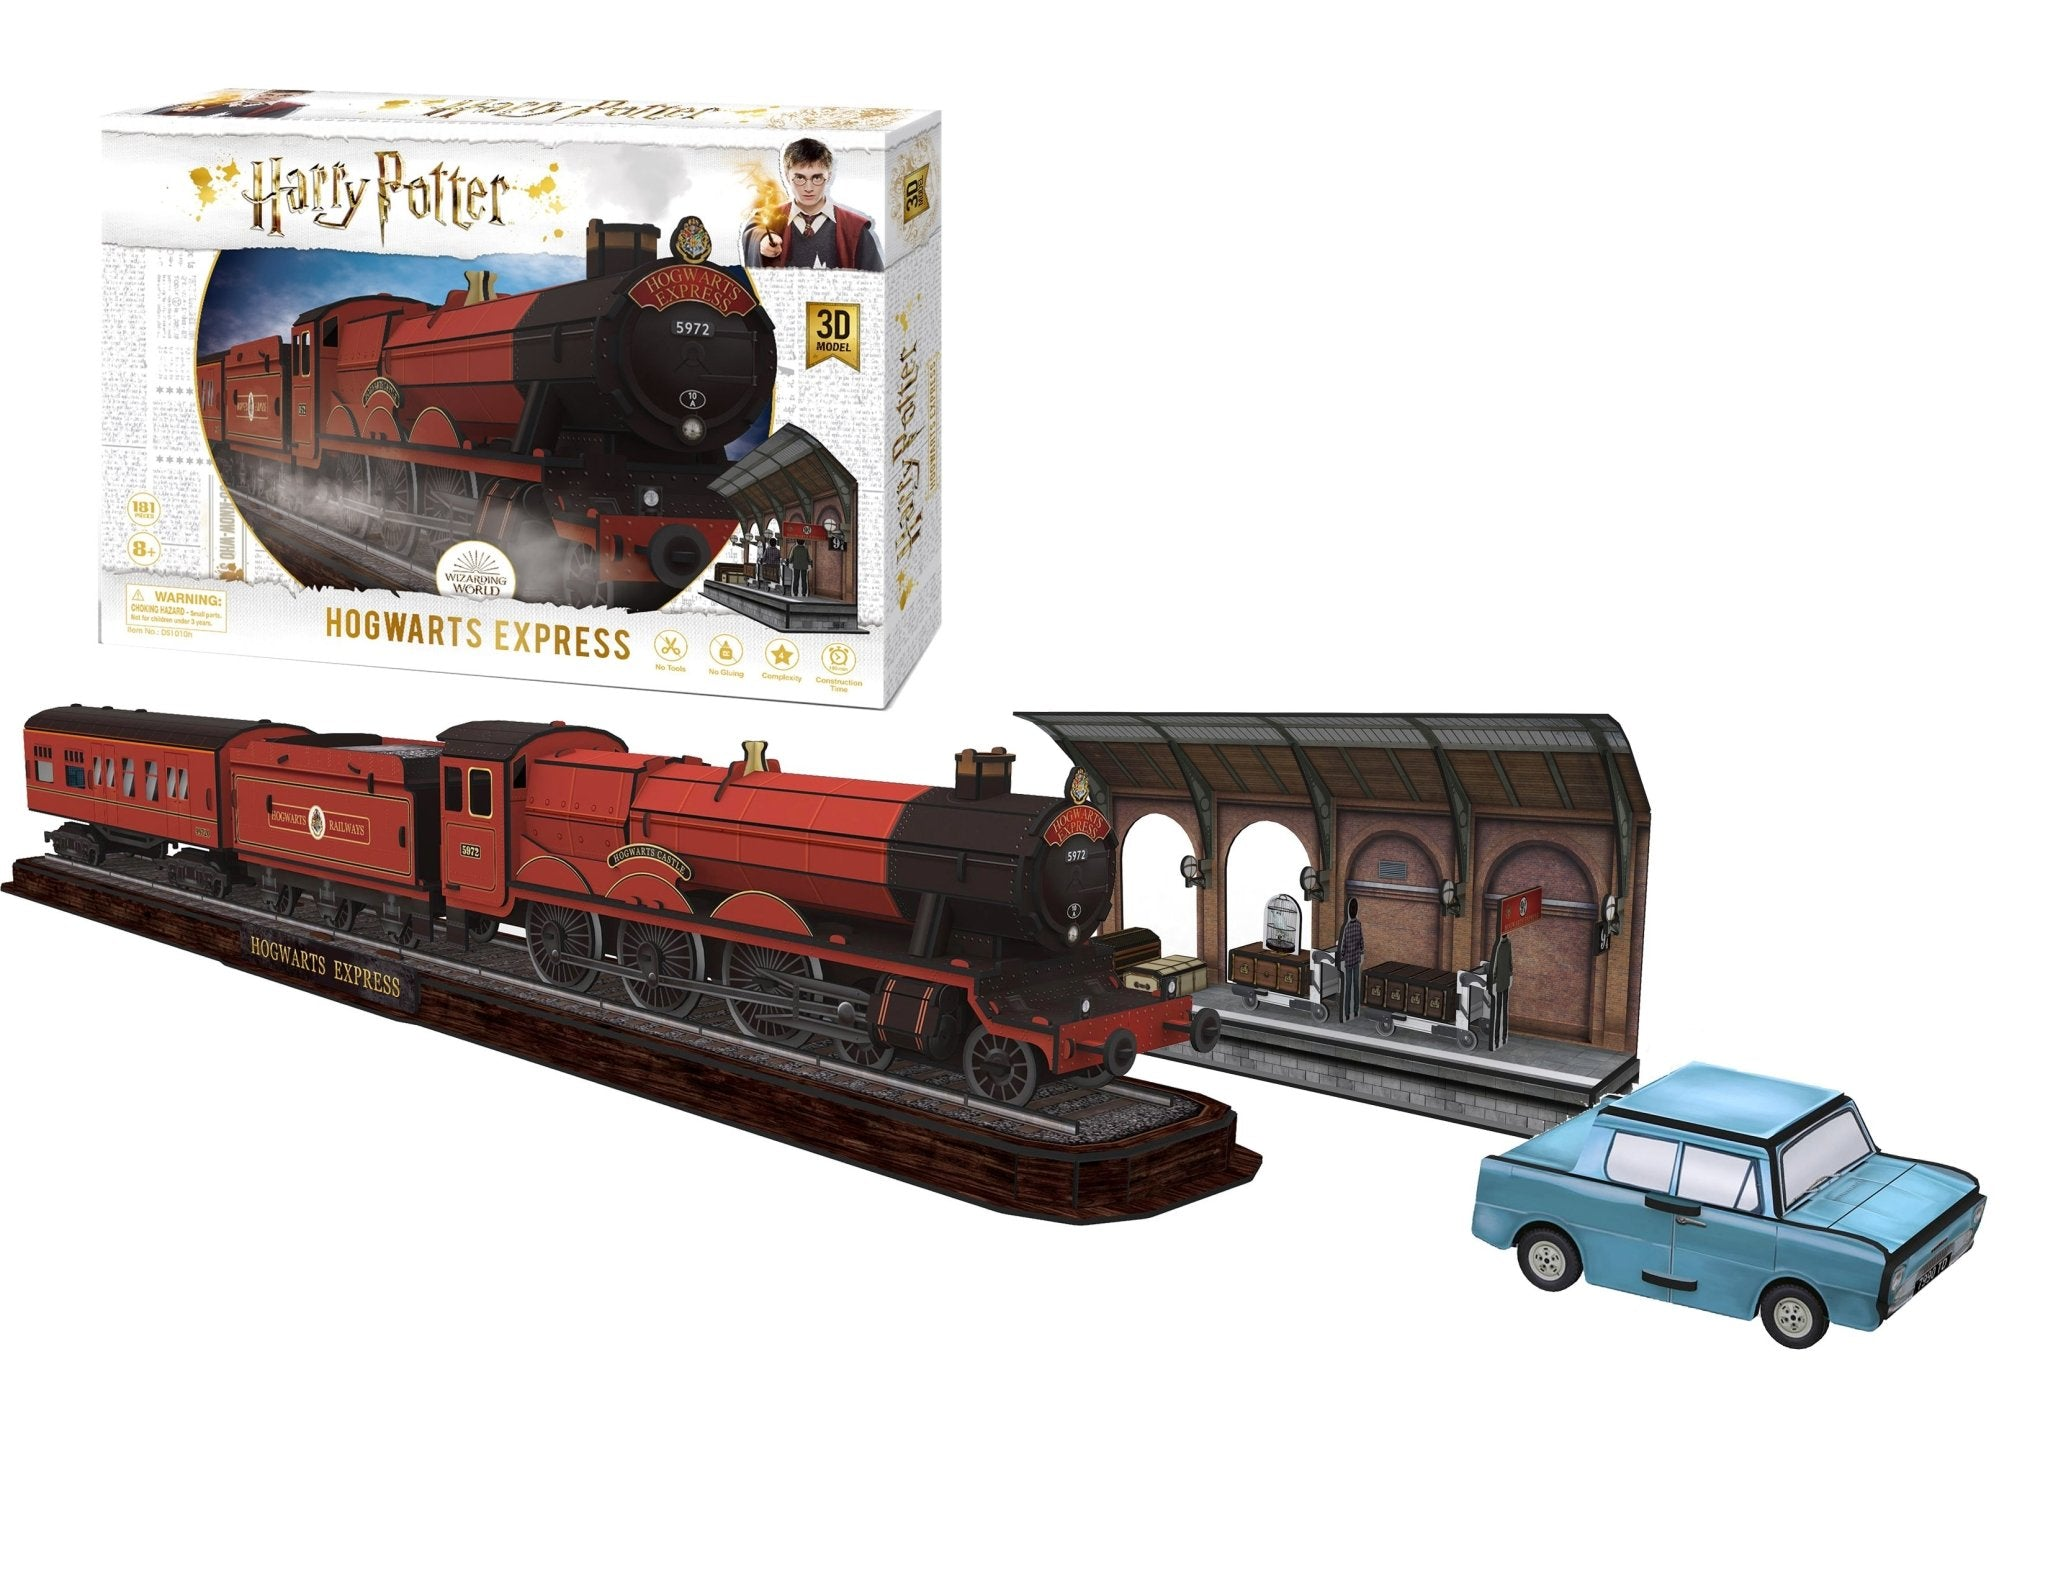 Harry Potter Hogwarts Express Model Kit - 4D Puzzle | 4D Cityscape | Collectible Puzzles - 4DPuzz